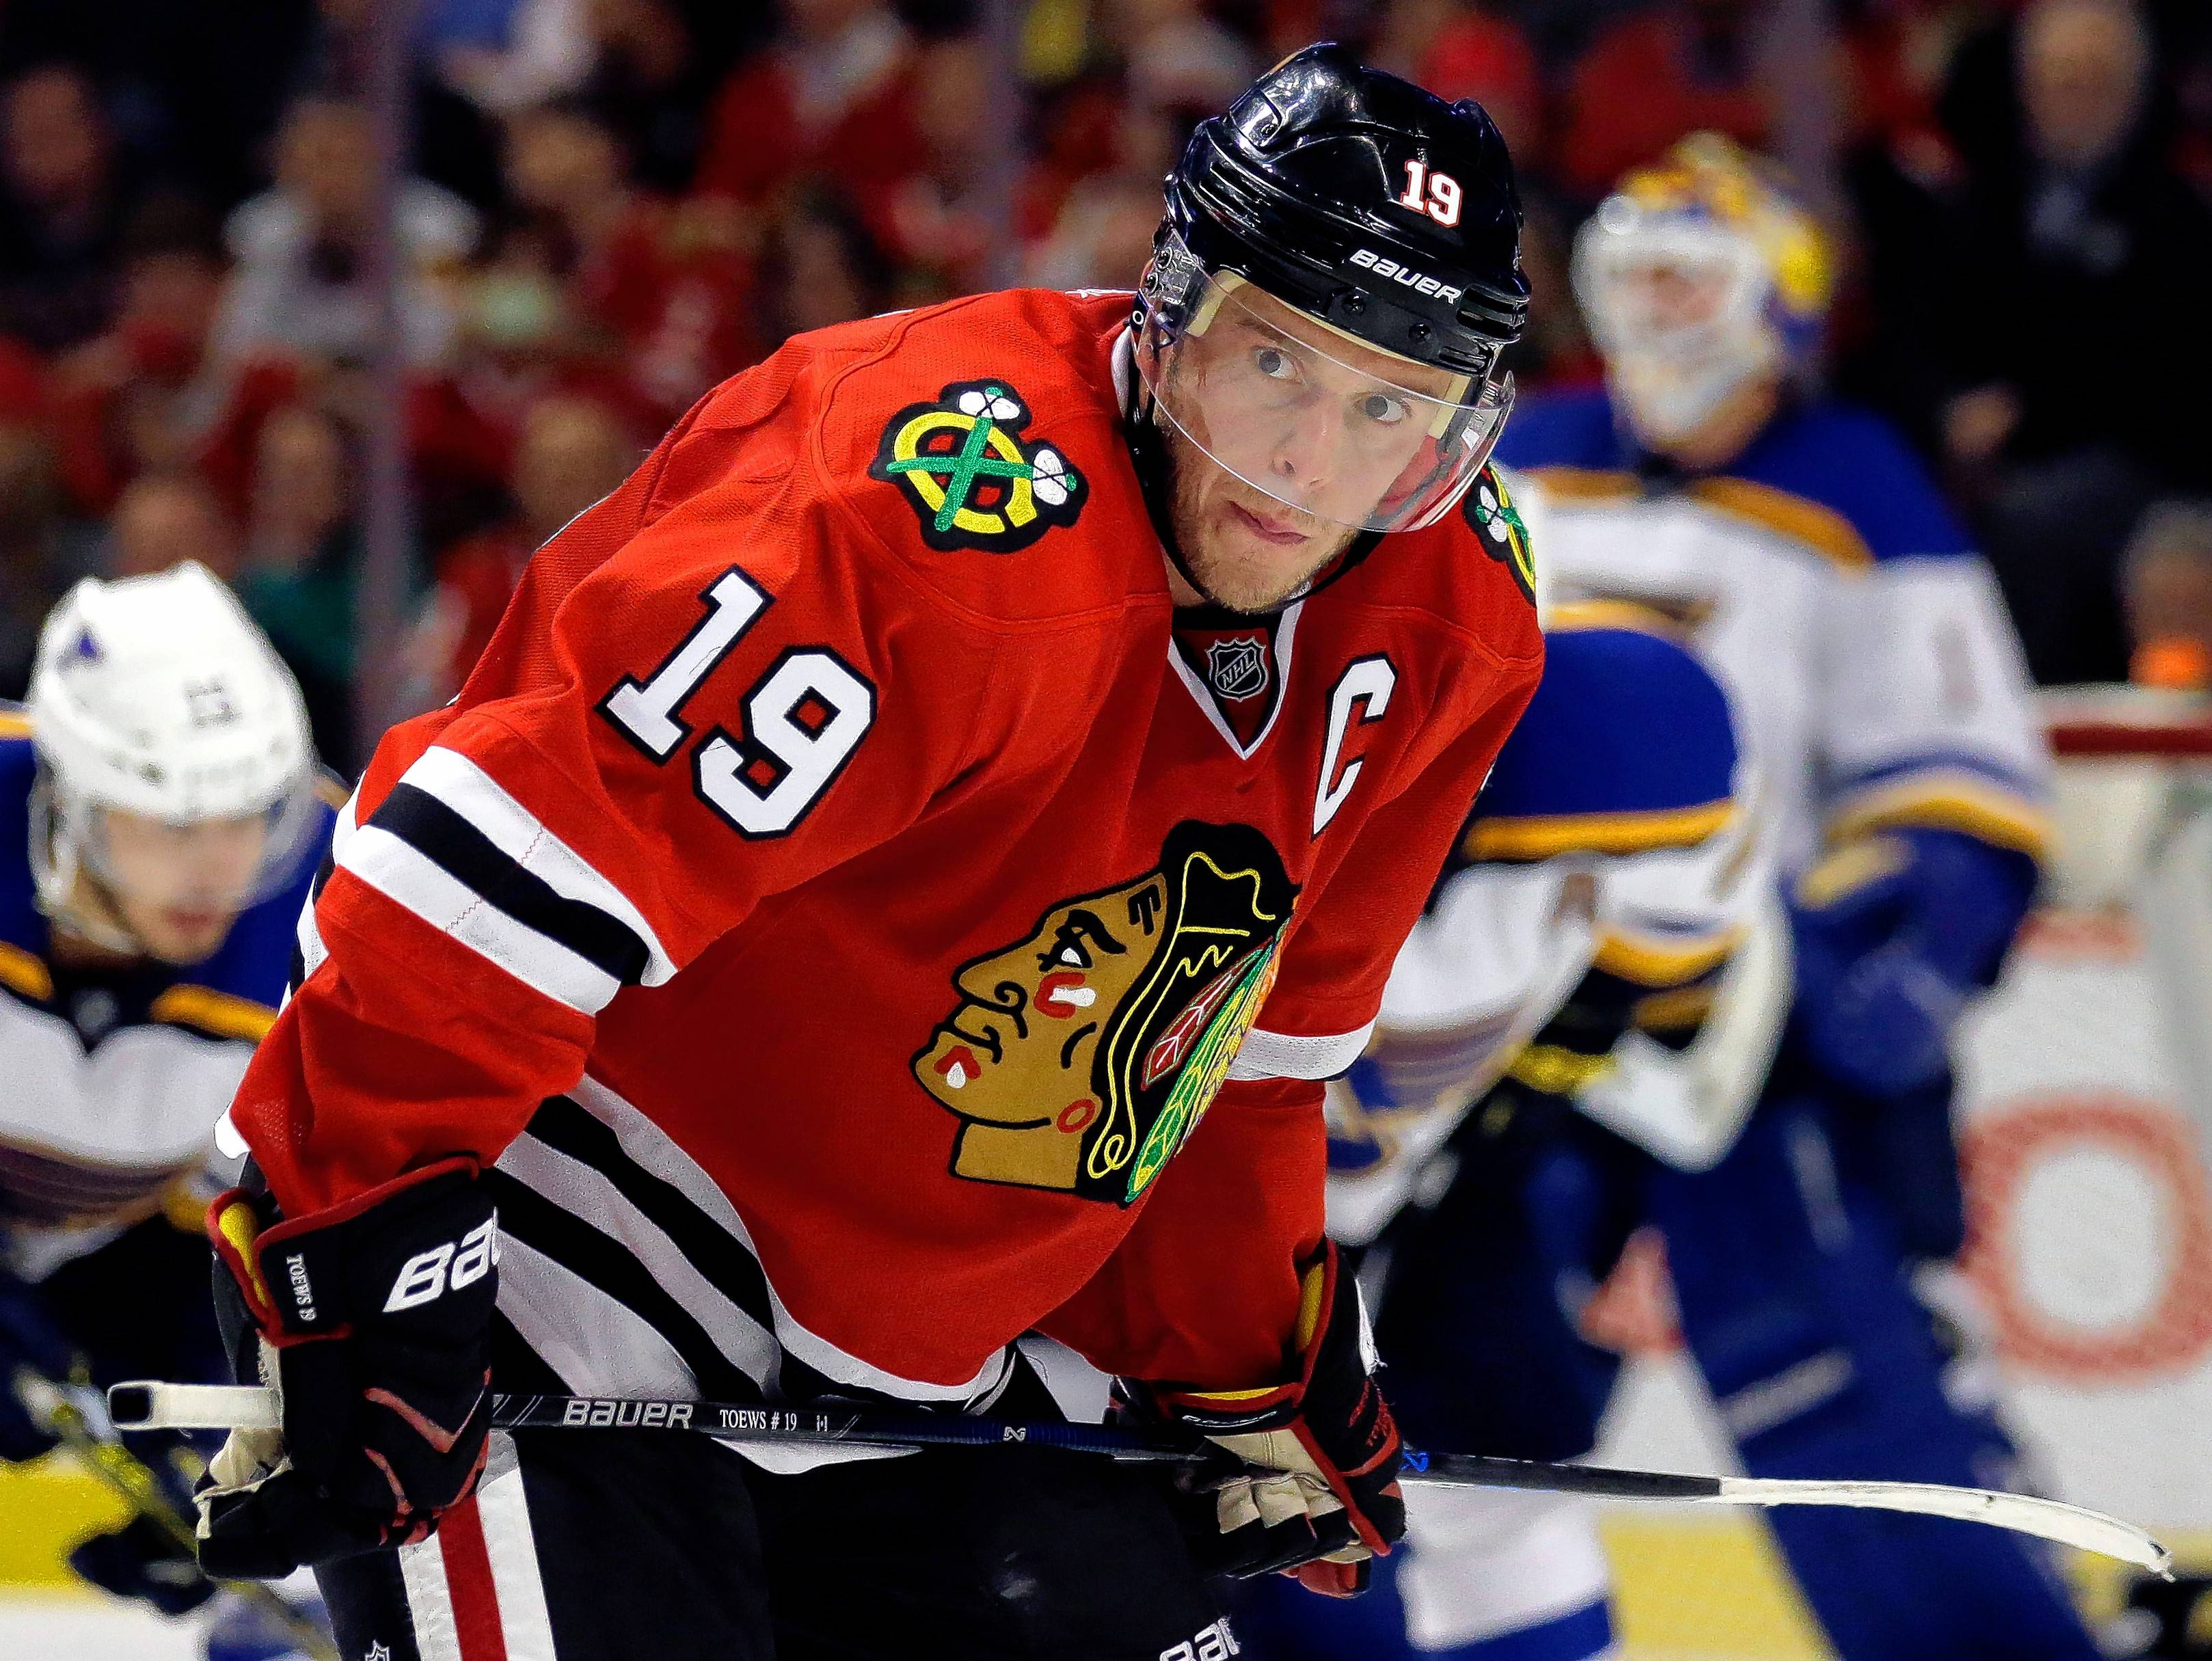 Blackhawks defenseman Trevor van Riemsdyk has been recalled from the injured reserve list to play in Saturday's game. Jonathan Toews, meanwhile, was put on the IR list retroactive to Nov. 24.